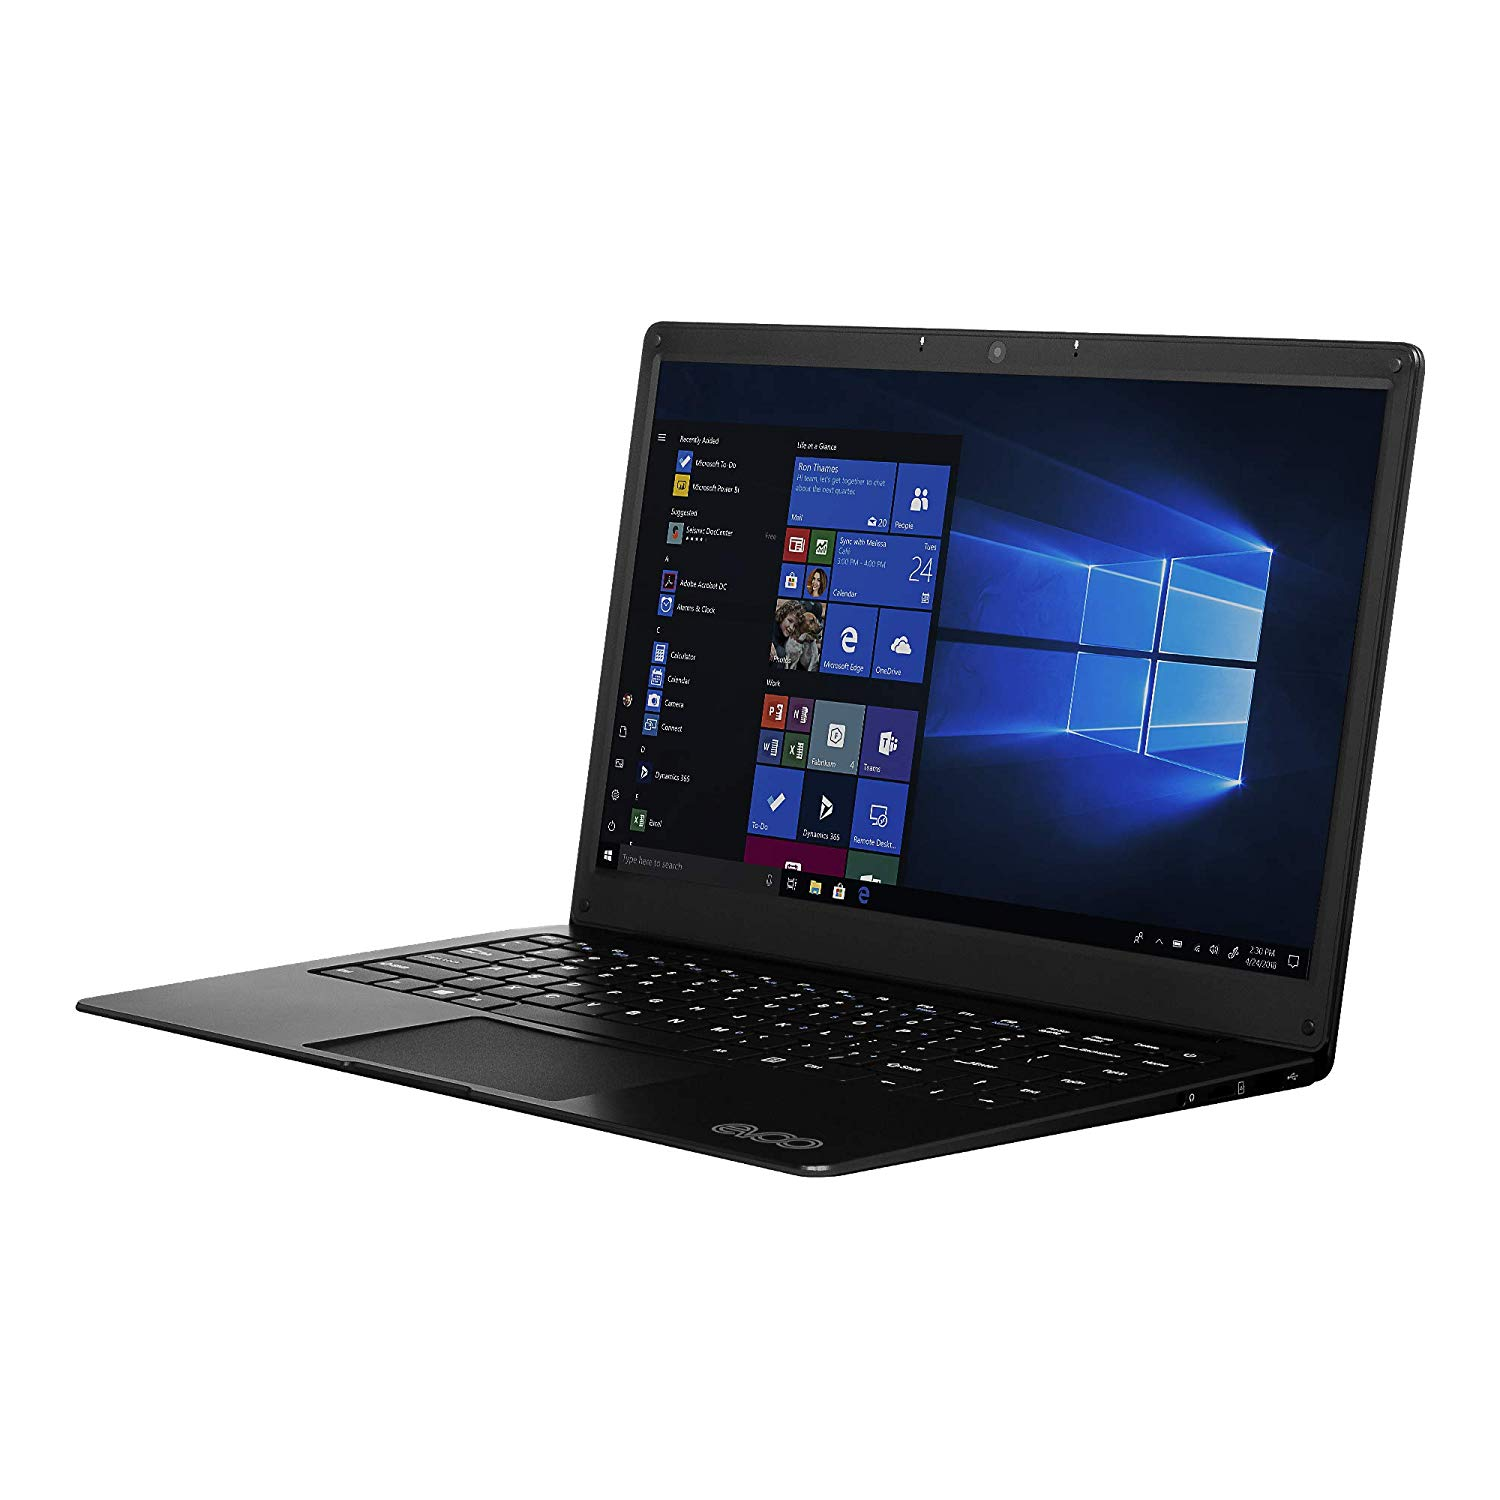 "EVOO 14.1"" Ultra Thin Laptop FHD 32GB 4GB"